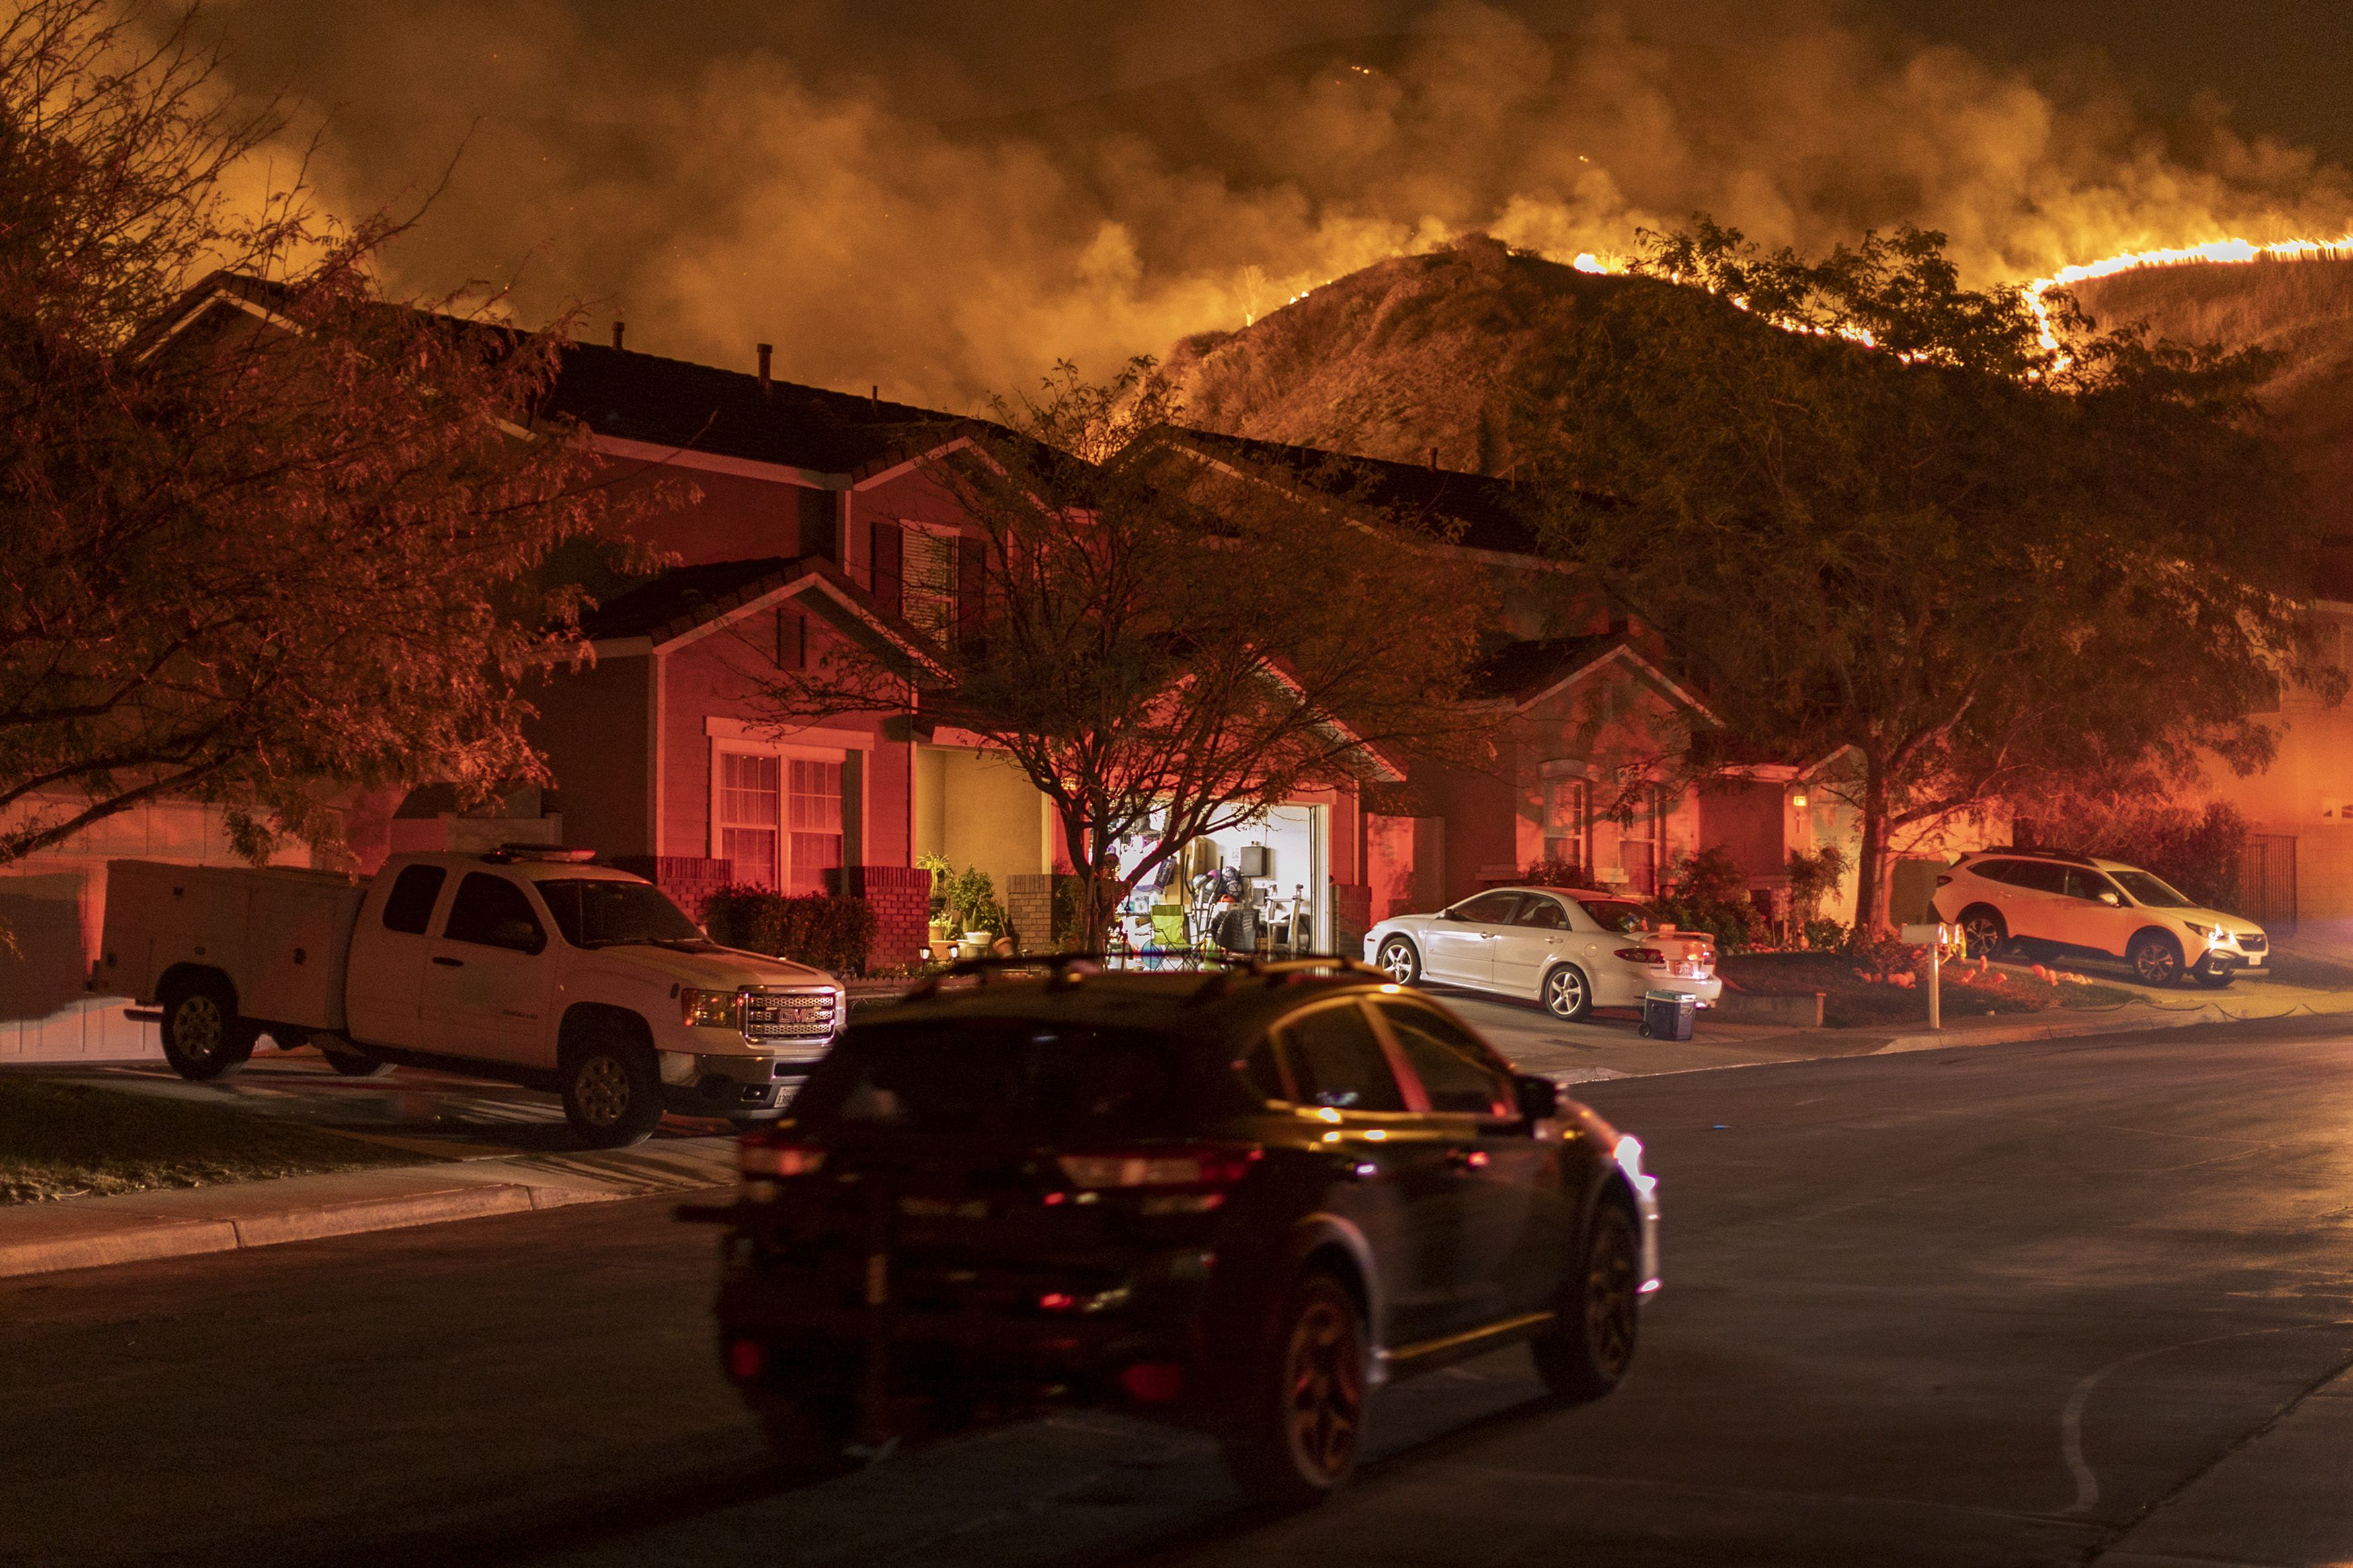 Flames come close to houses during the Blue Ridge Fire on October 27, 2020 in Chino Hills, California.